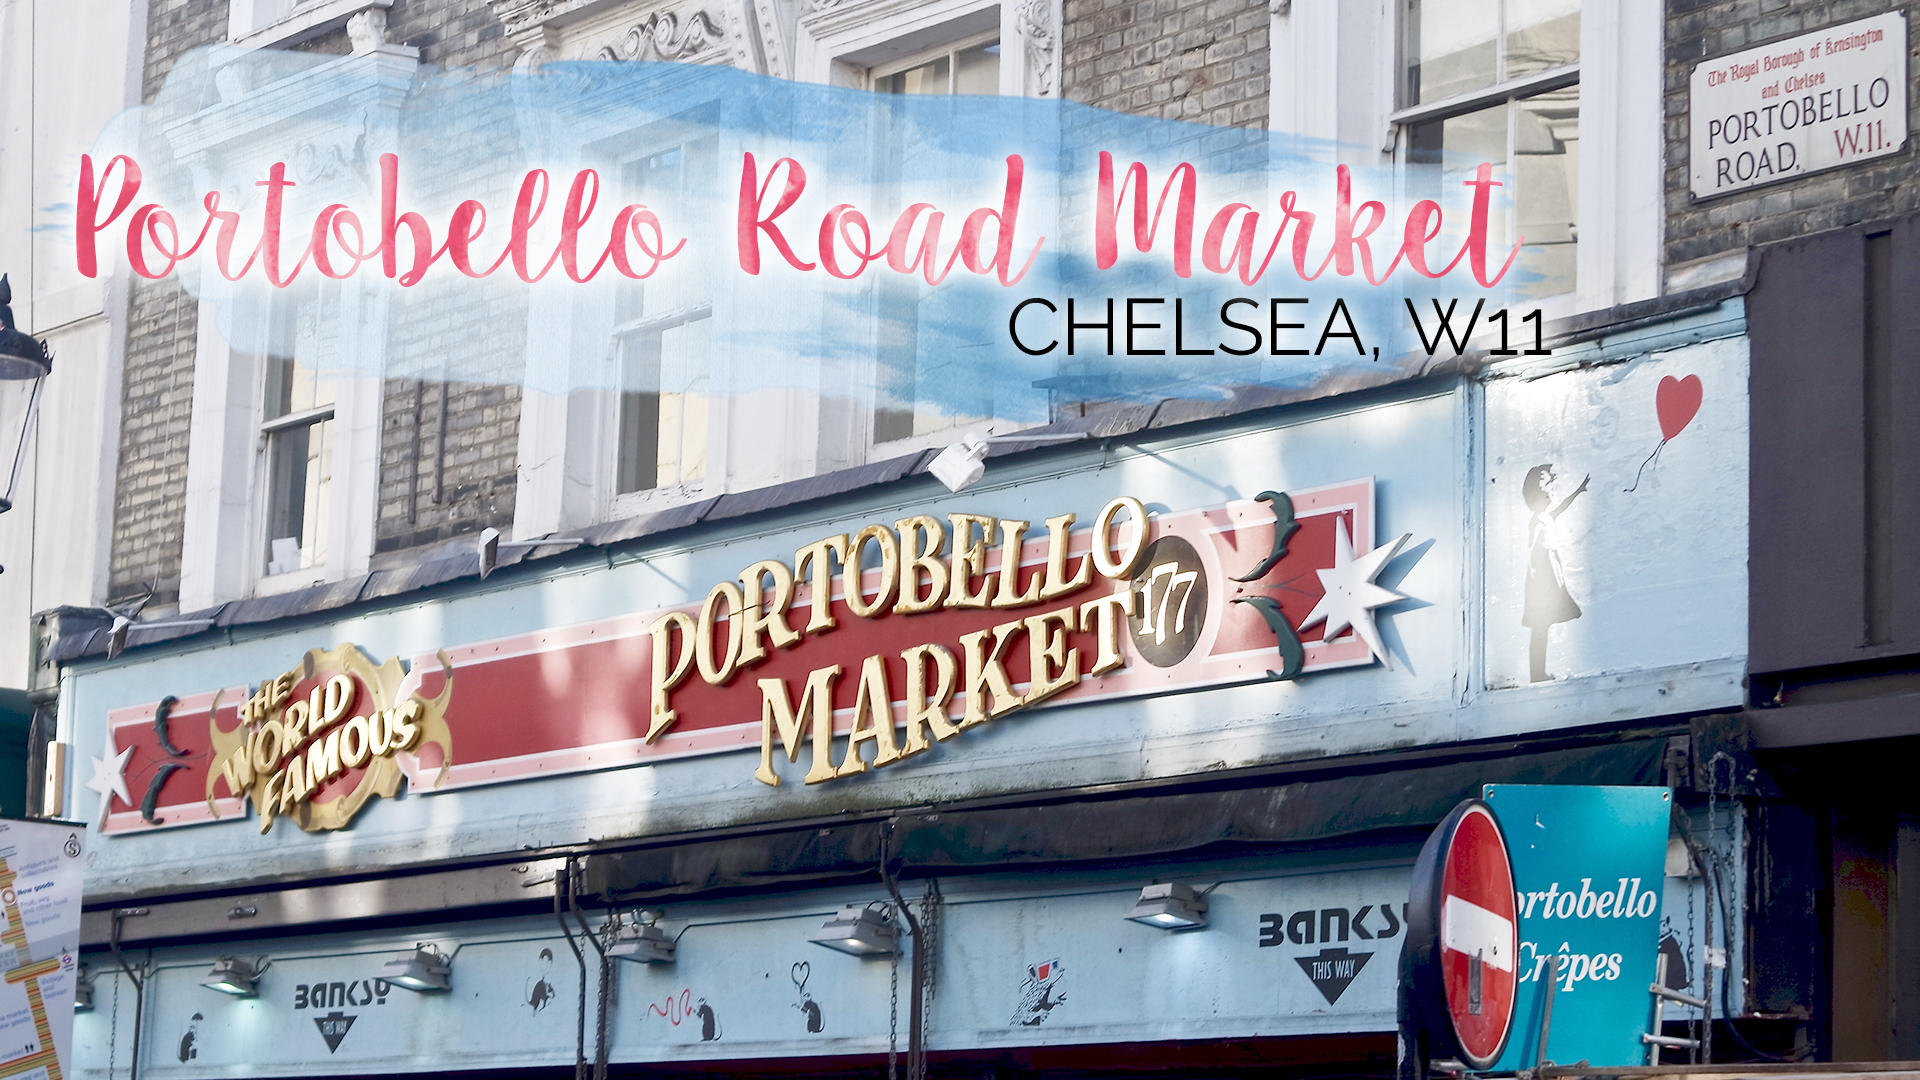 Saturday Mornings at Portobello Road, Chelsea || London